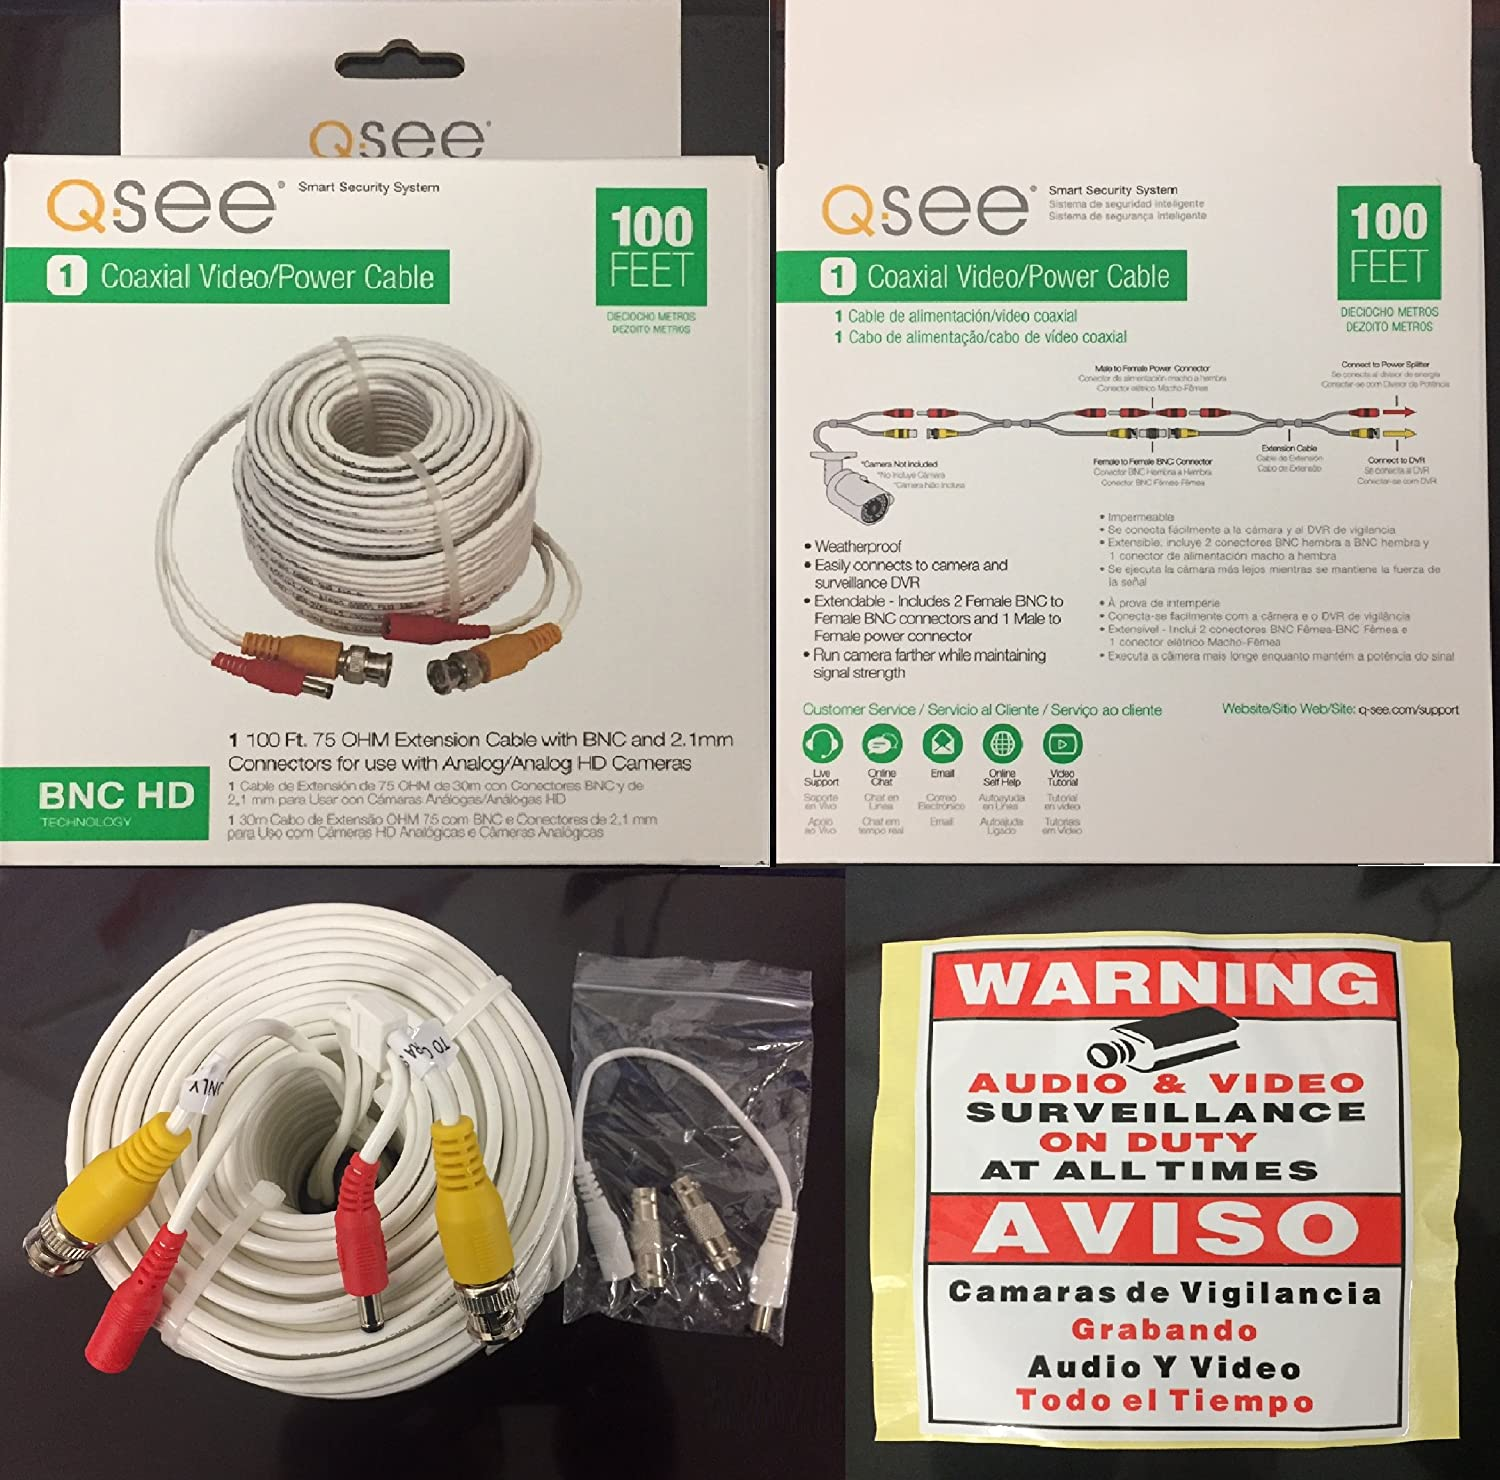 Amazon.com : Q-See Original Video and Power 100-Foot HD BNC Male Cable with 2 Female Connectors : Camera & Photo